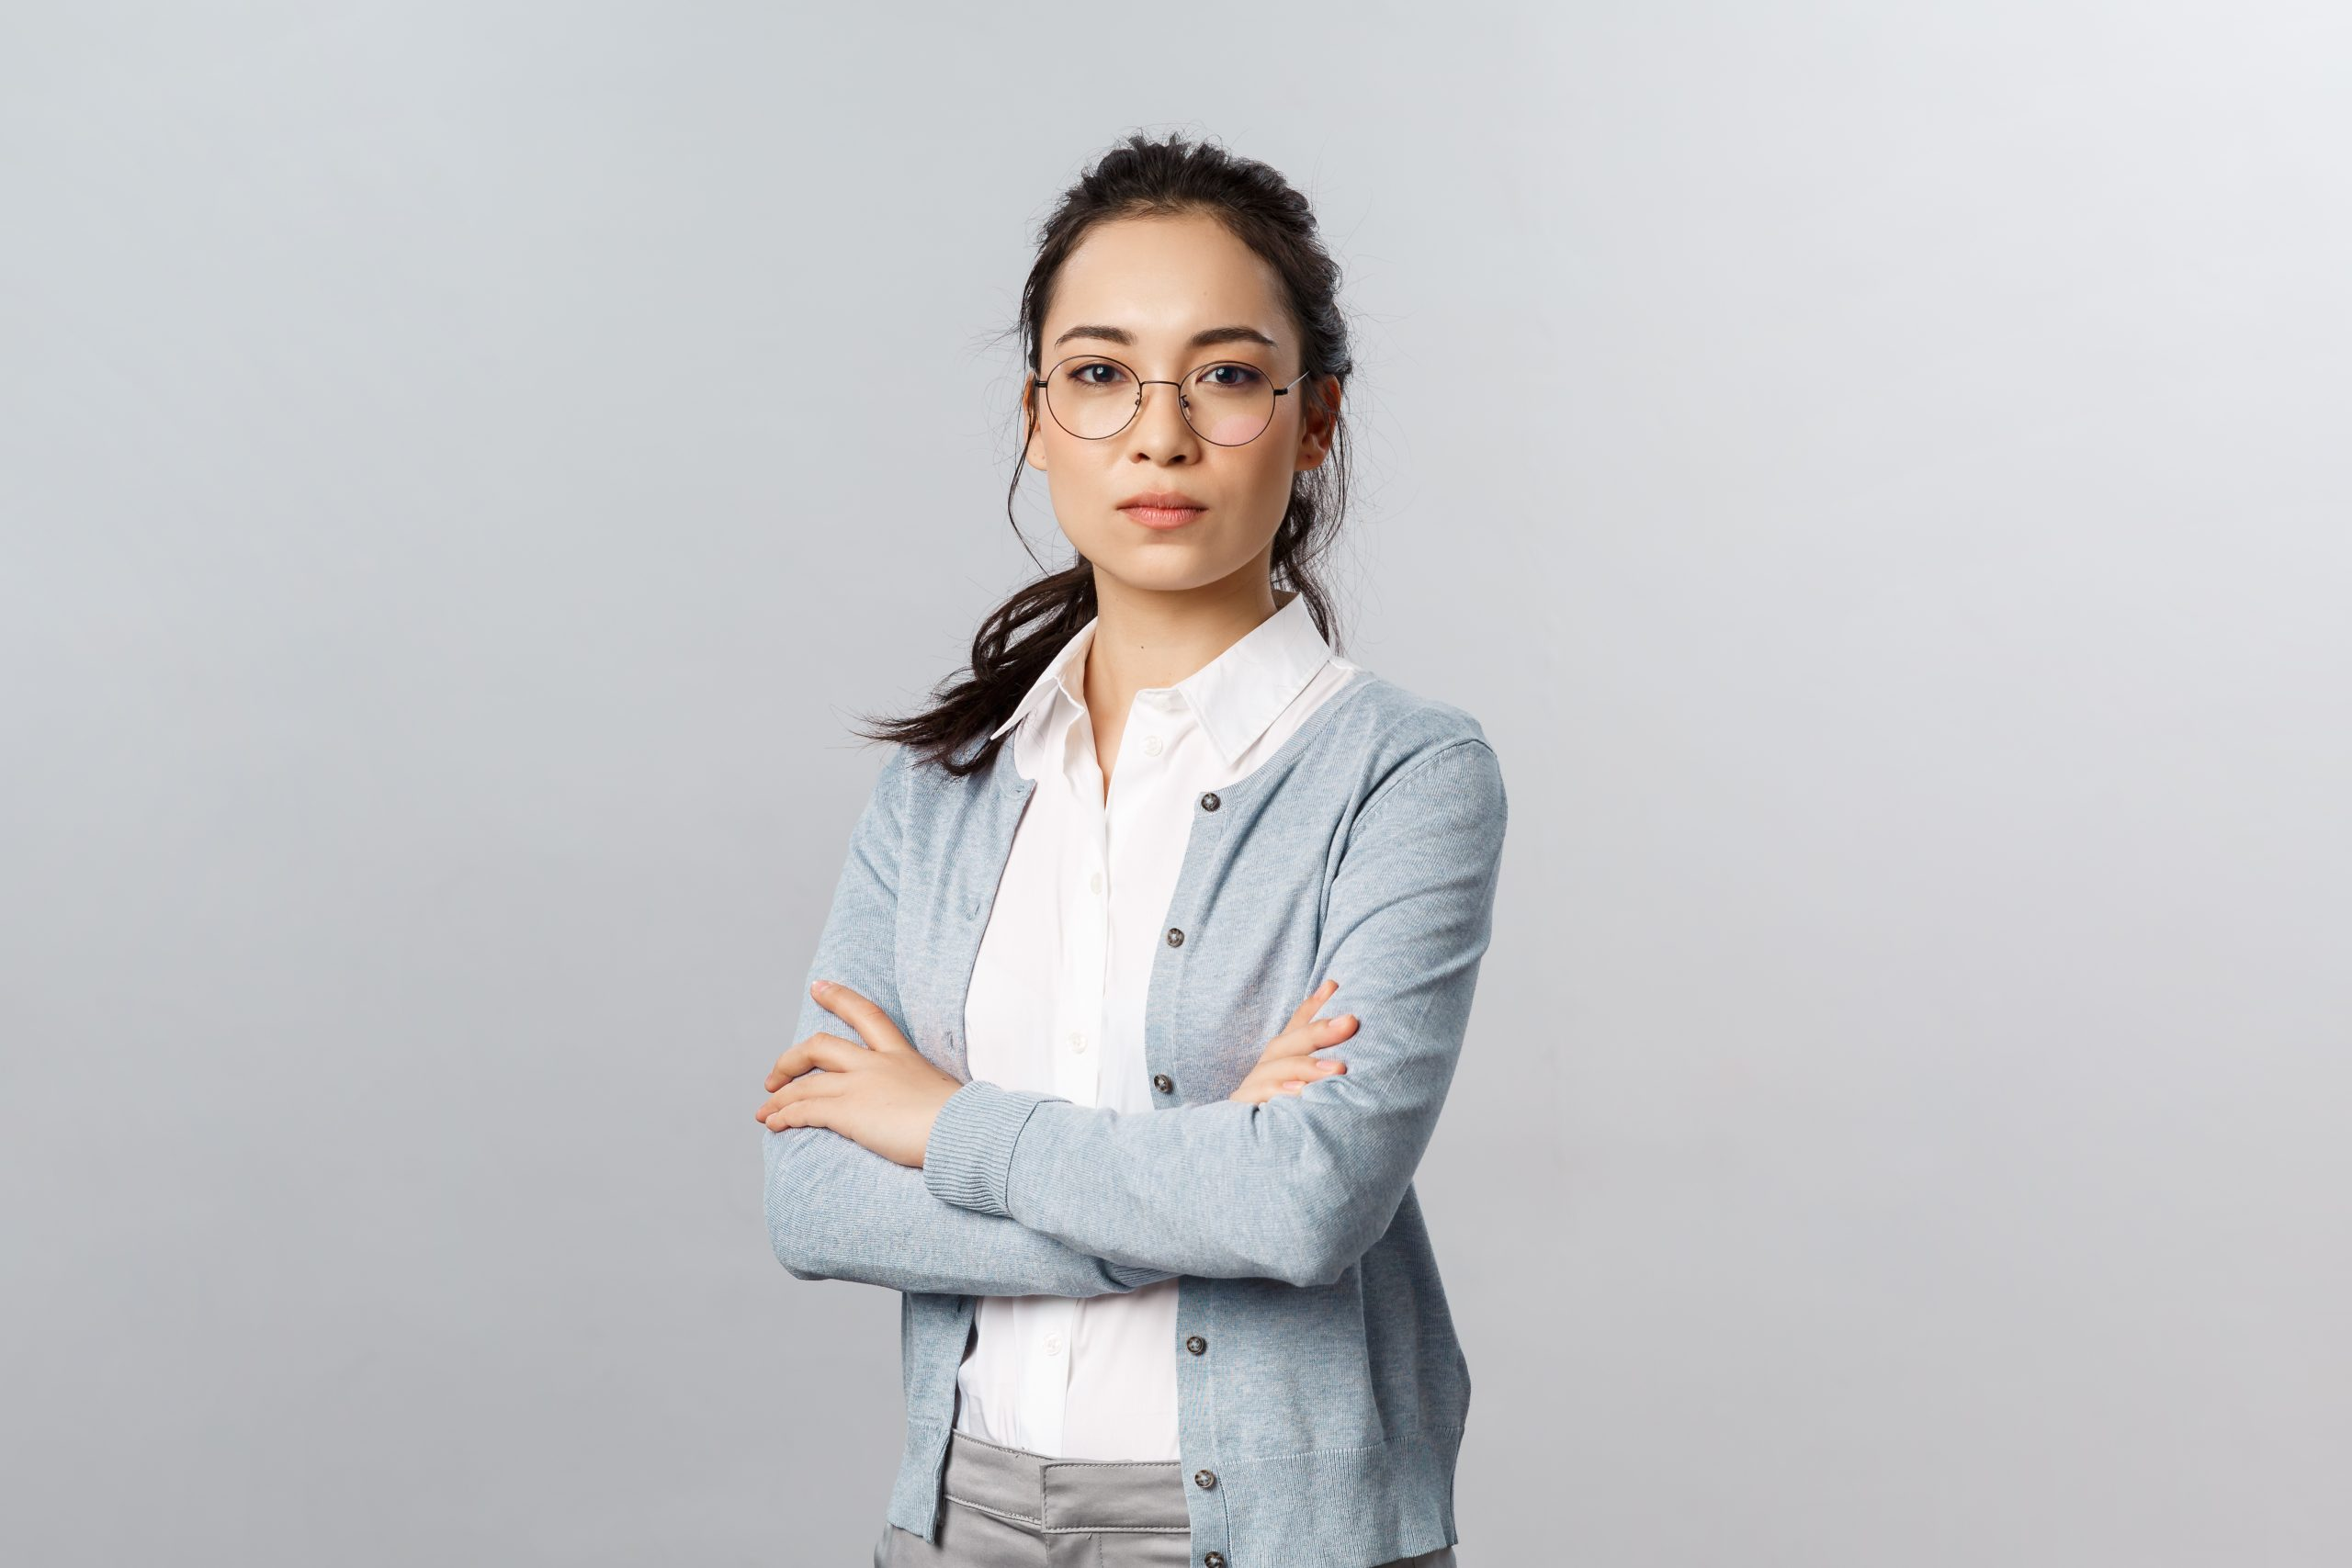 Serious-looking determined attractive asian woman, tutor or teacher starting online lesson with class standing self-assured with normal focused expression, cross arms on chest.